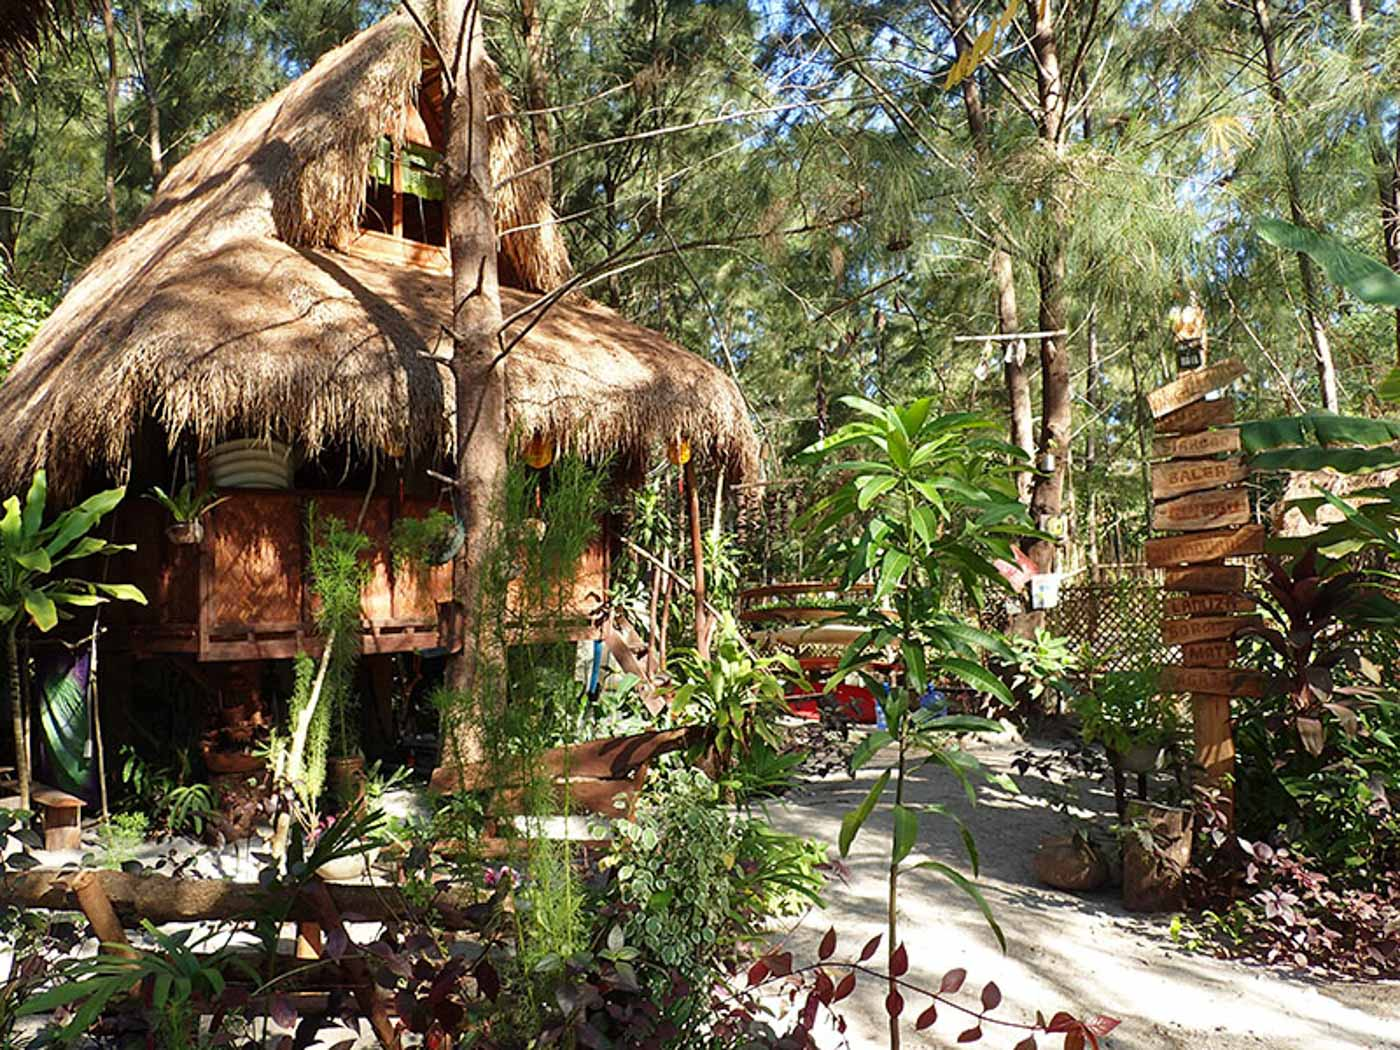 RUSTIC. There are many budget accommodations like Hideout in Liwliwa.